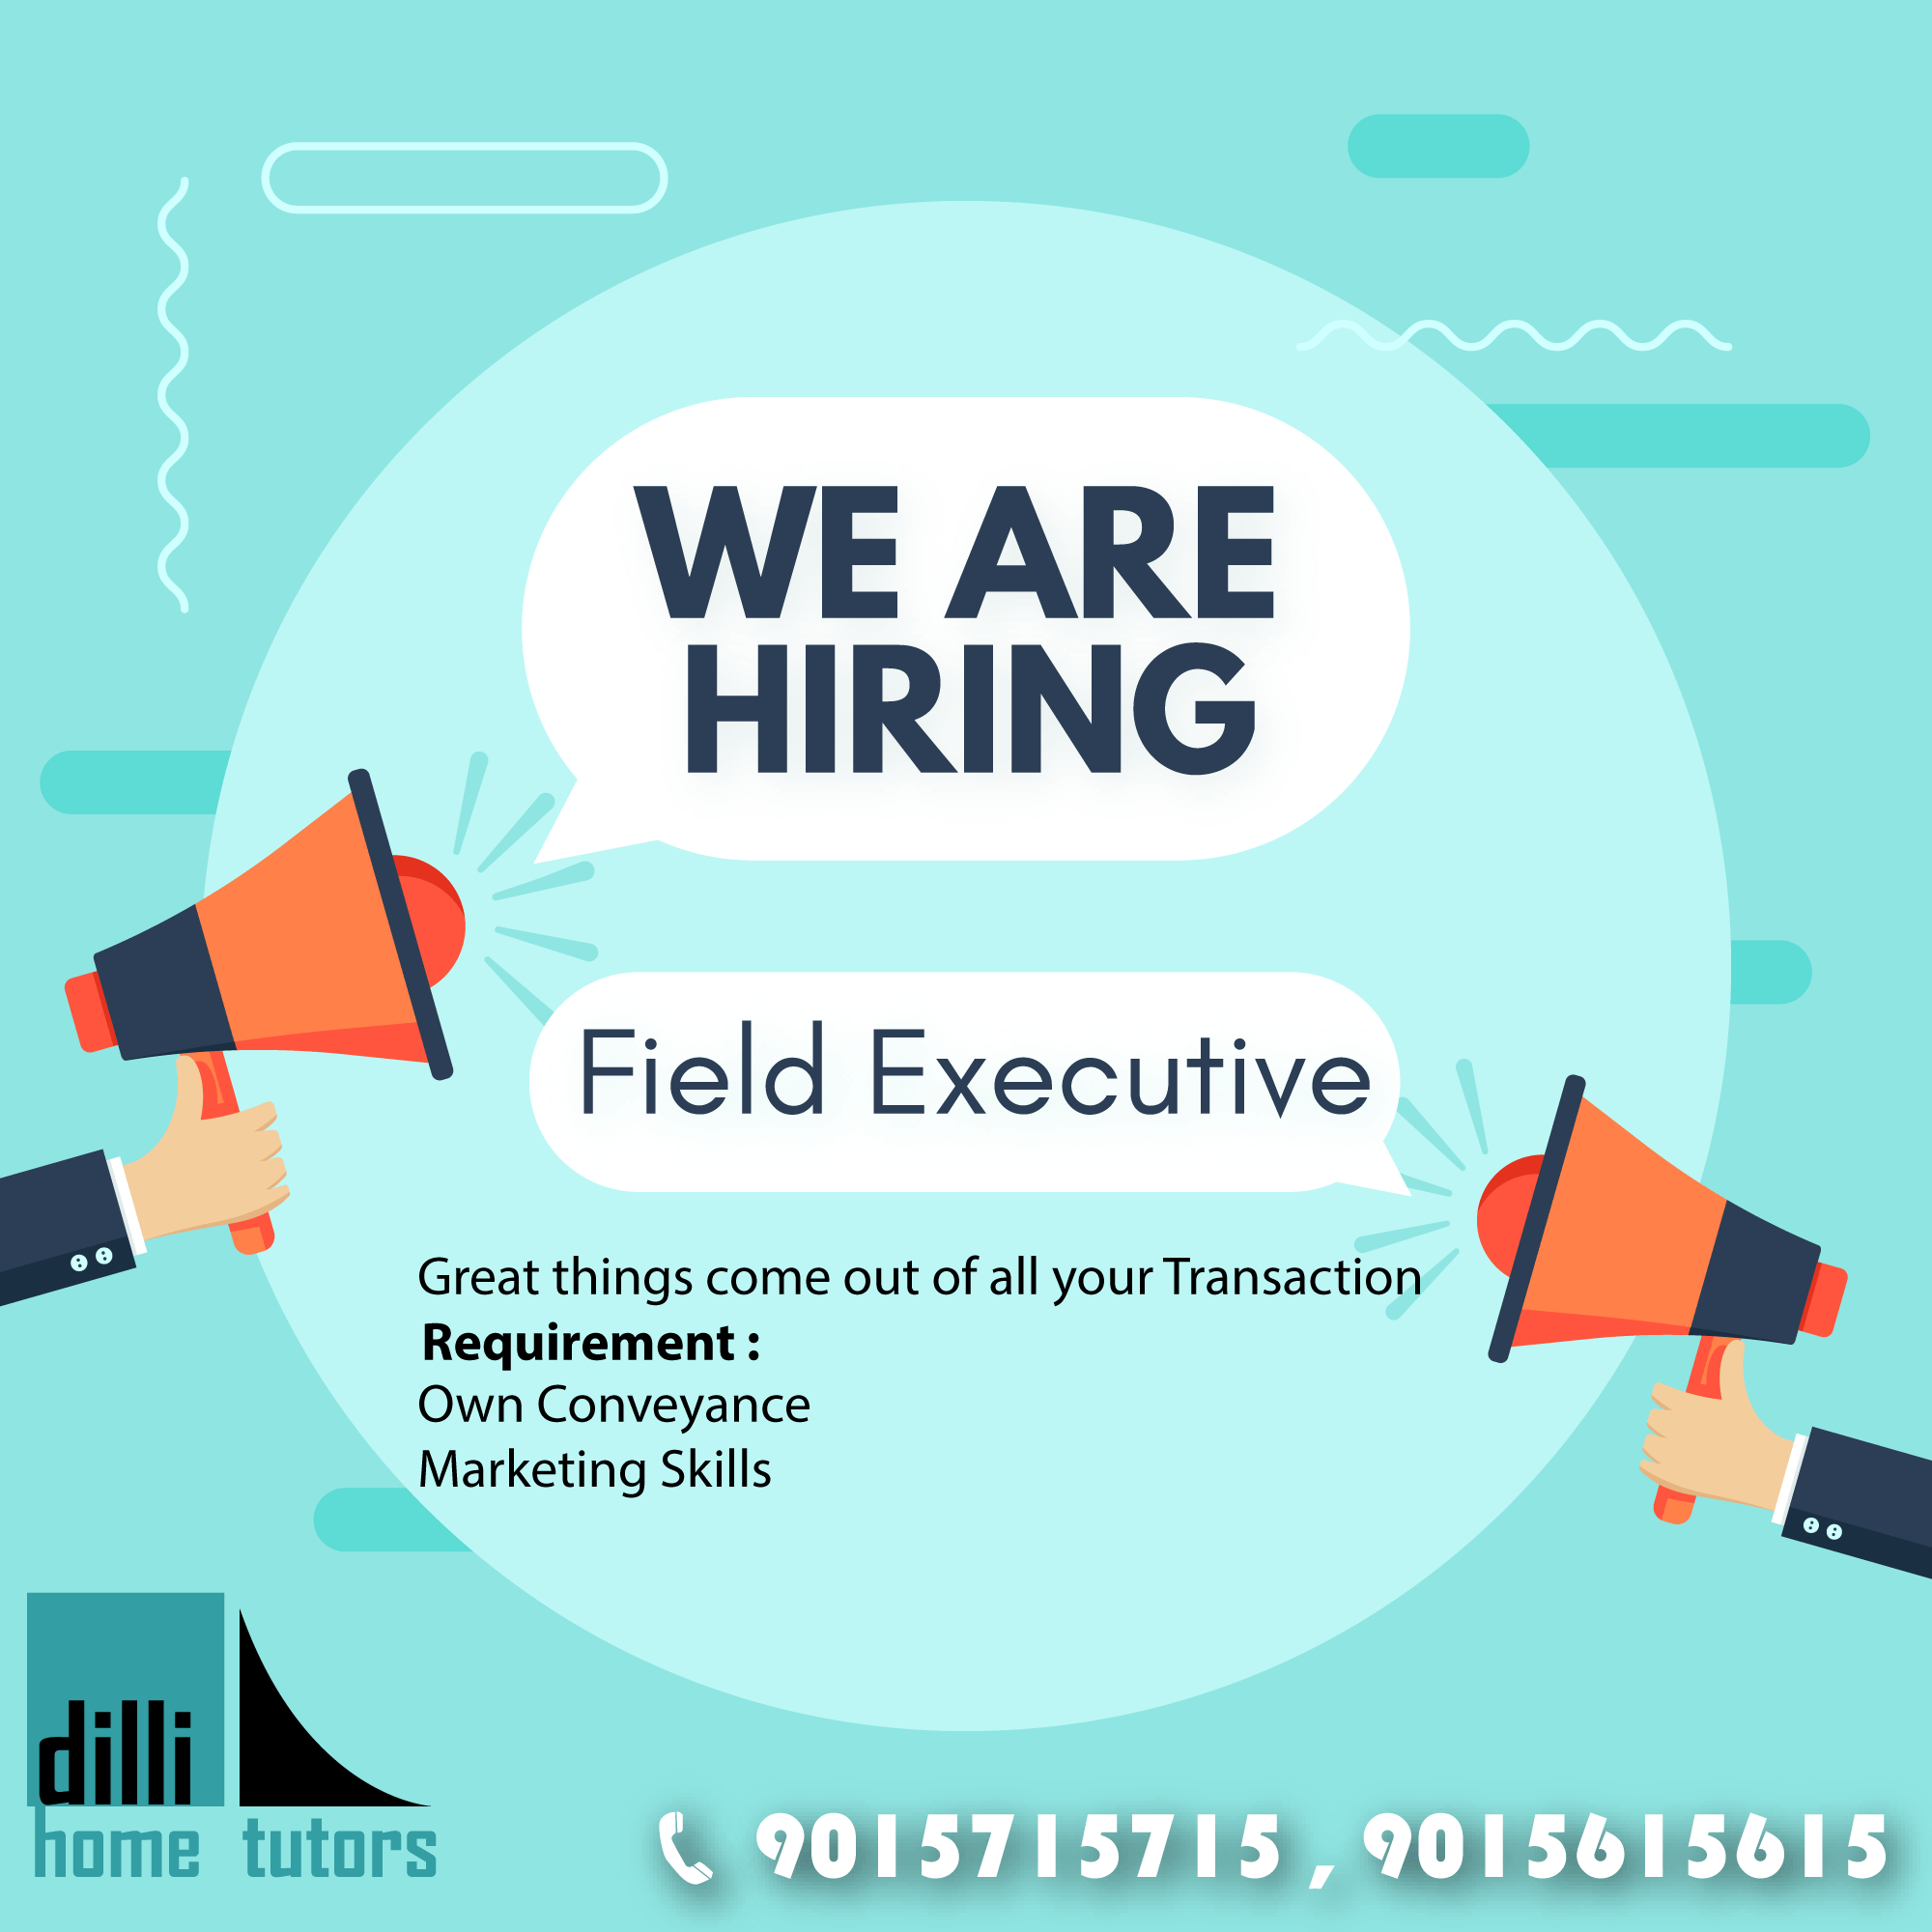 Dillihometutors We Are Hiring Field Executive Great Things Comes Out Of All Your Transaction Contact Us Email Dillitutor Gmail Com Phne 9015715715